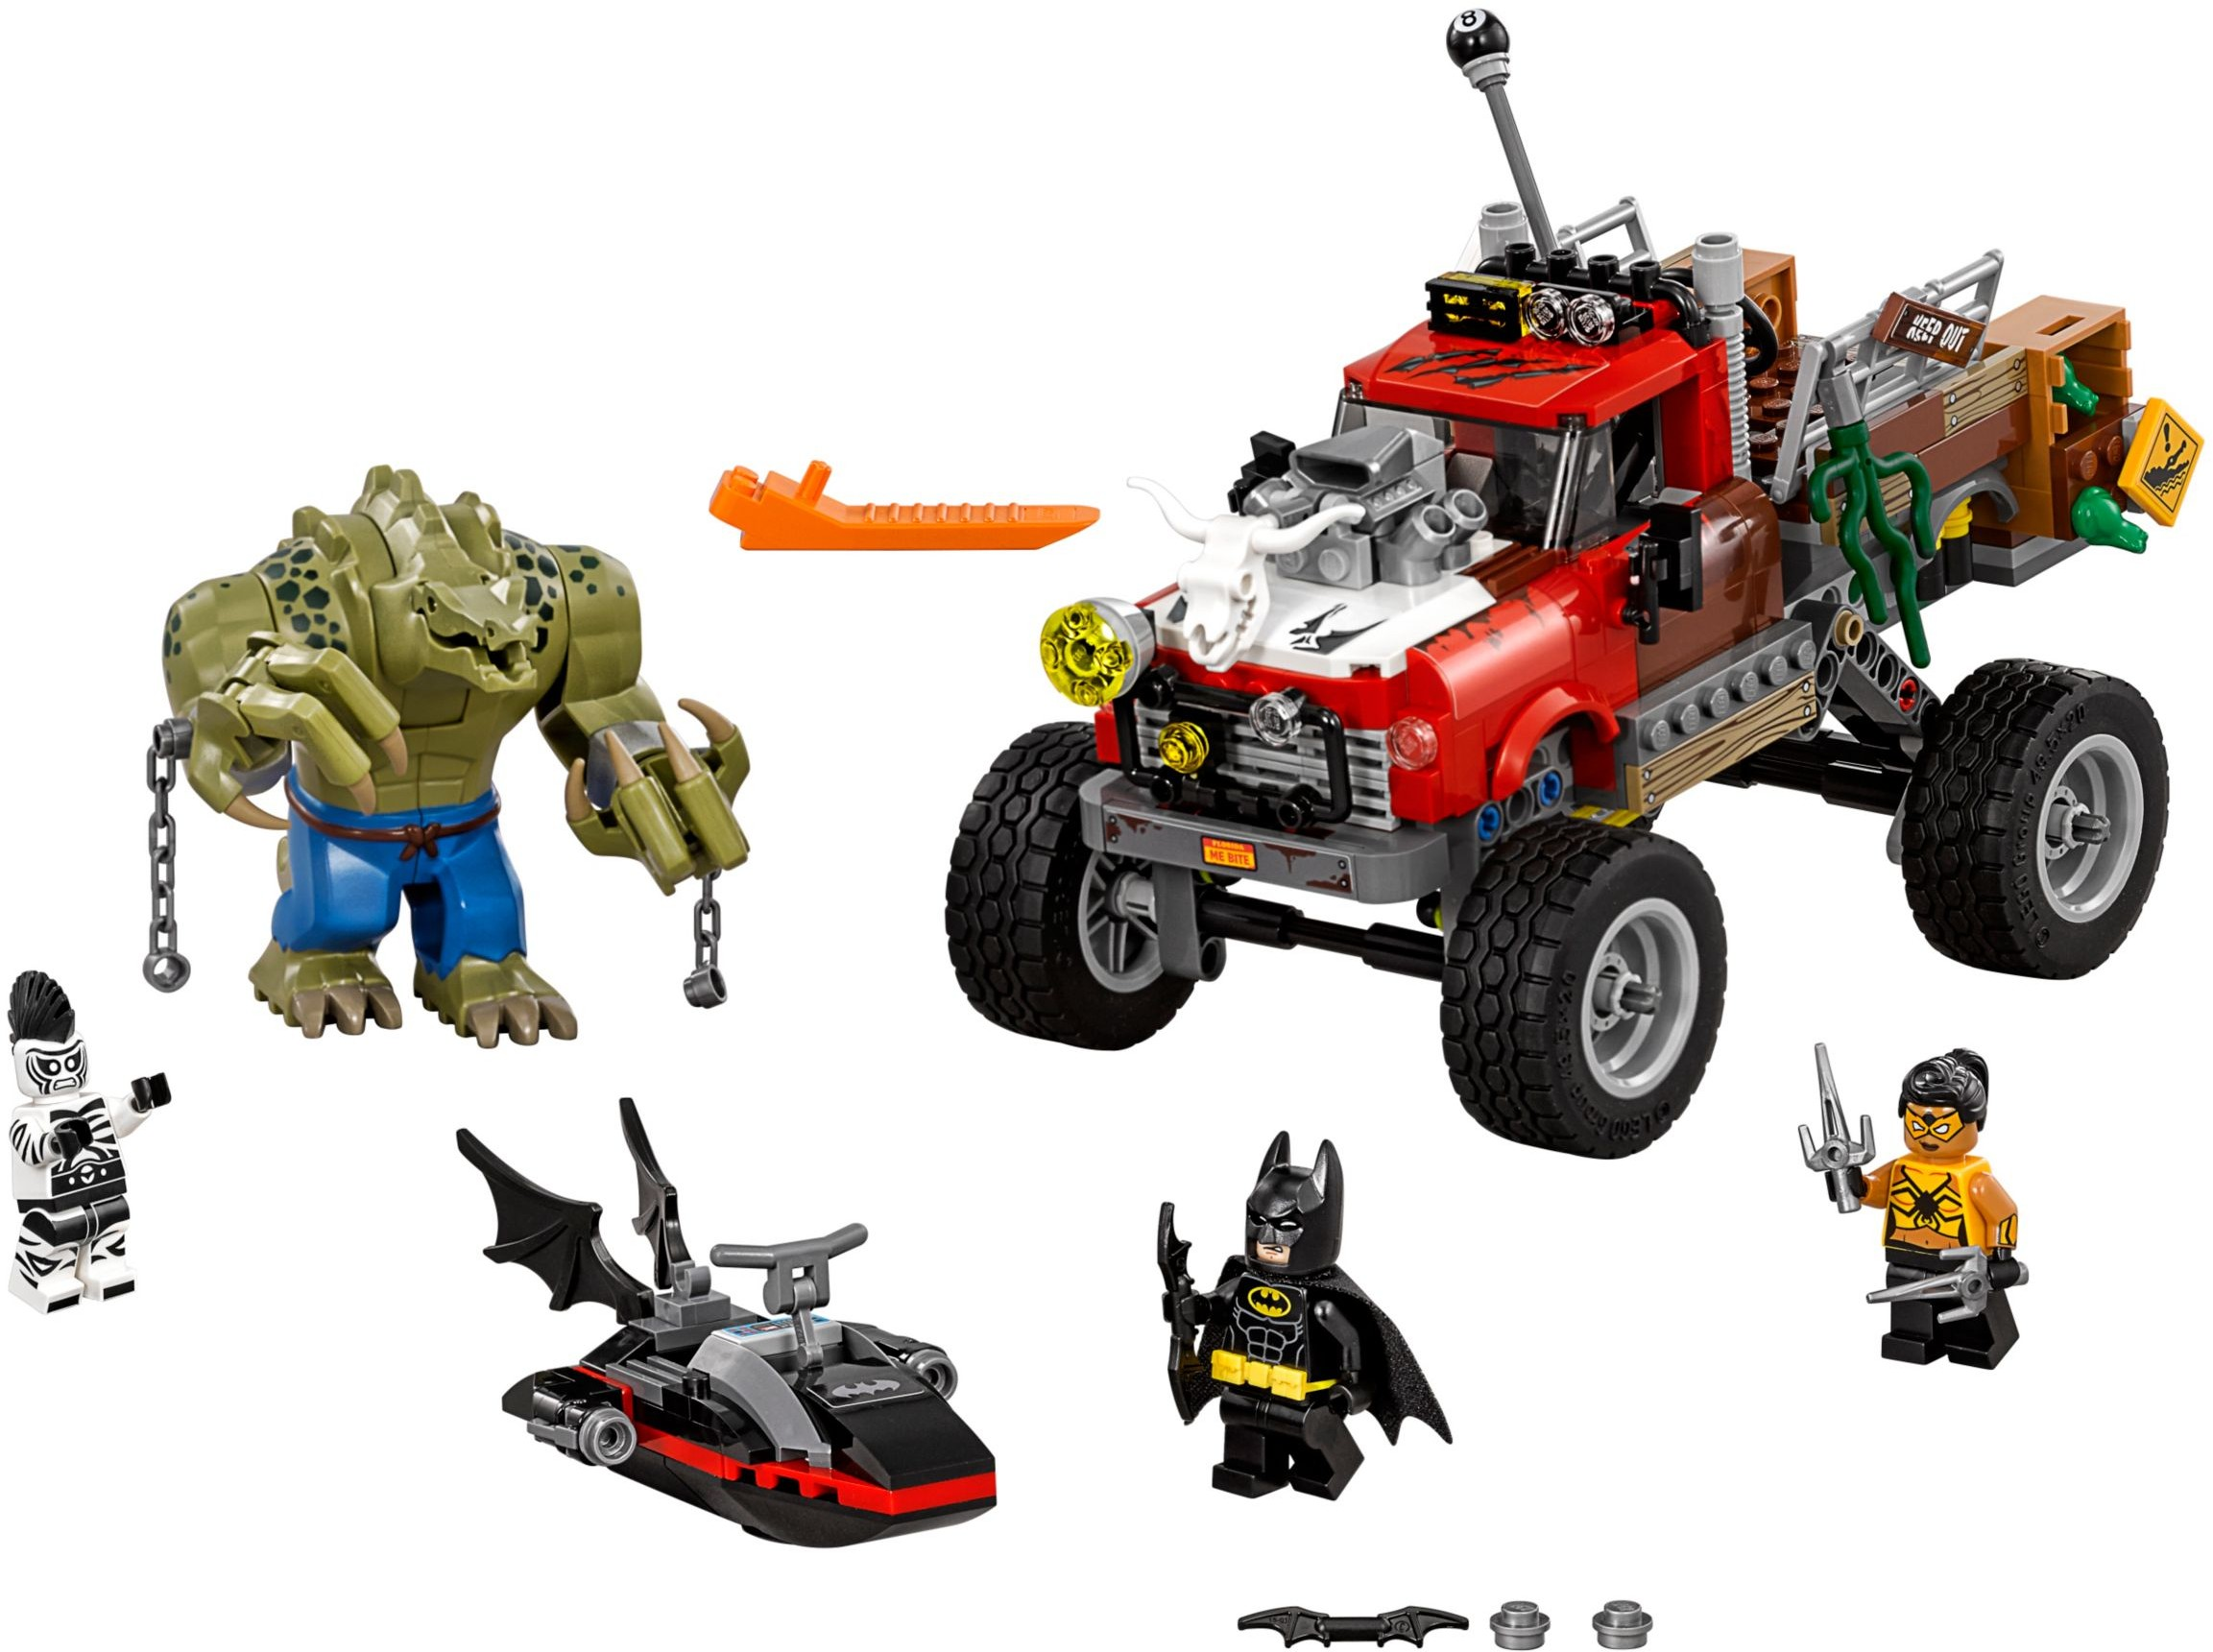 Starkiller Stars In Star Wars Force moreover The Lego Batman Movie Official Images furthermore Print together with File Twi'lek Female as well Lego Ninjago 2014 Nindroid Mechdragon 70725 Revealed Photos. on rancor coloring pages